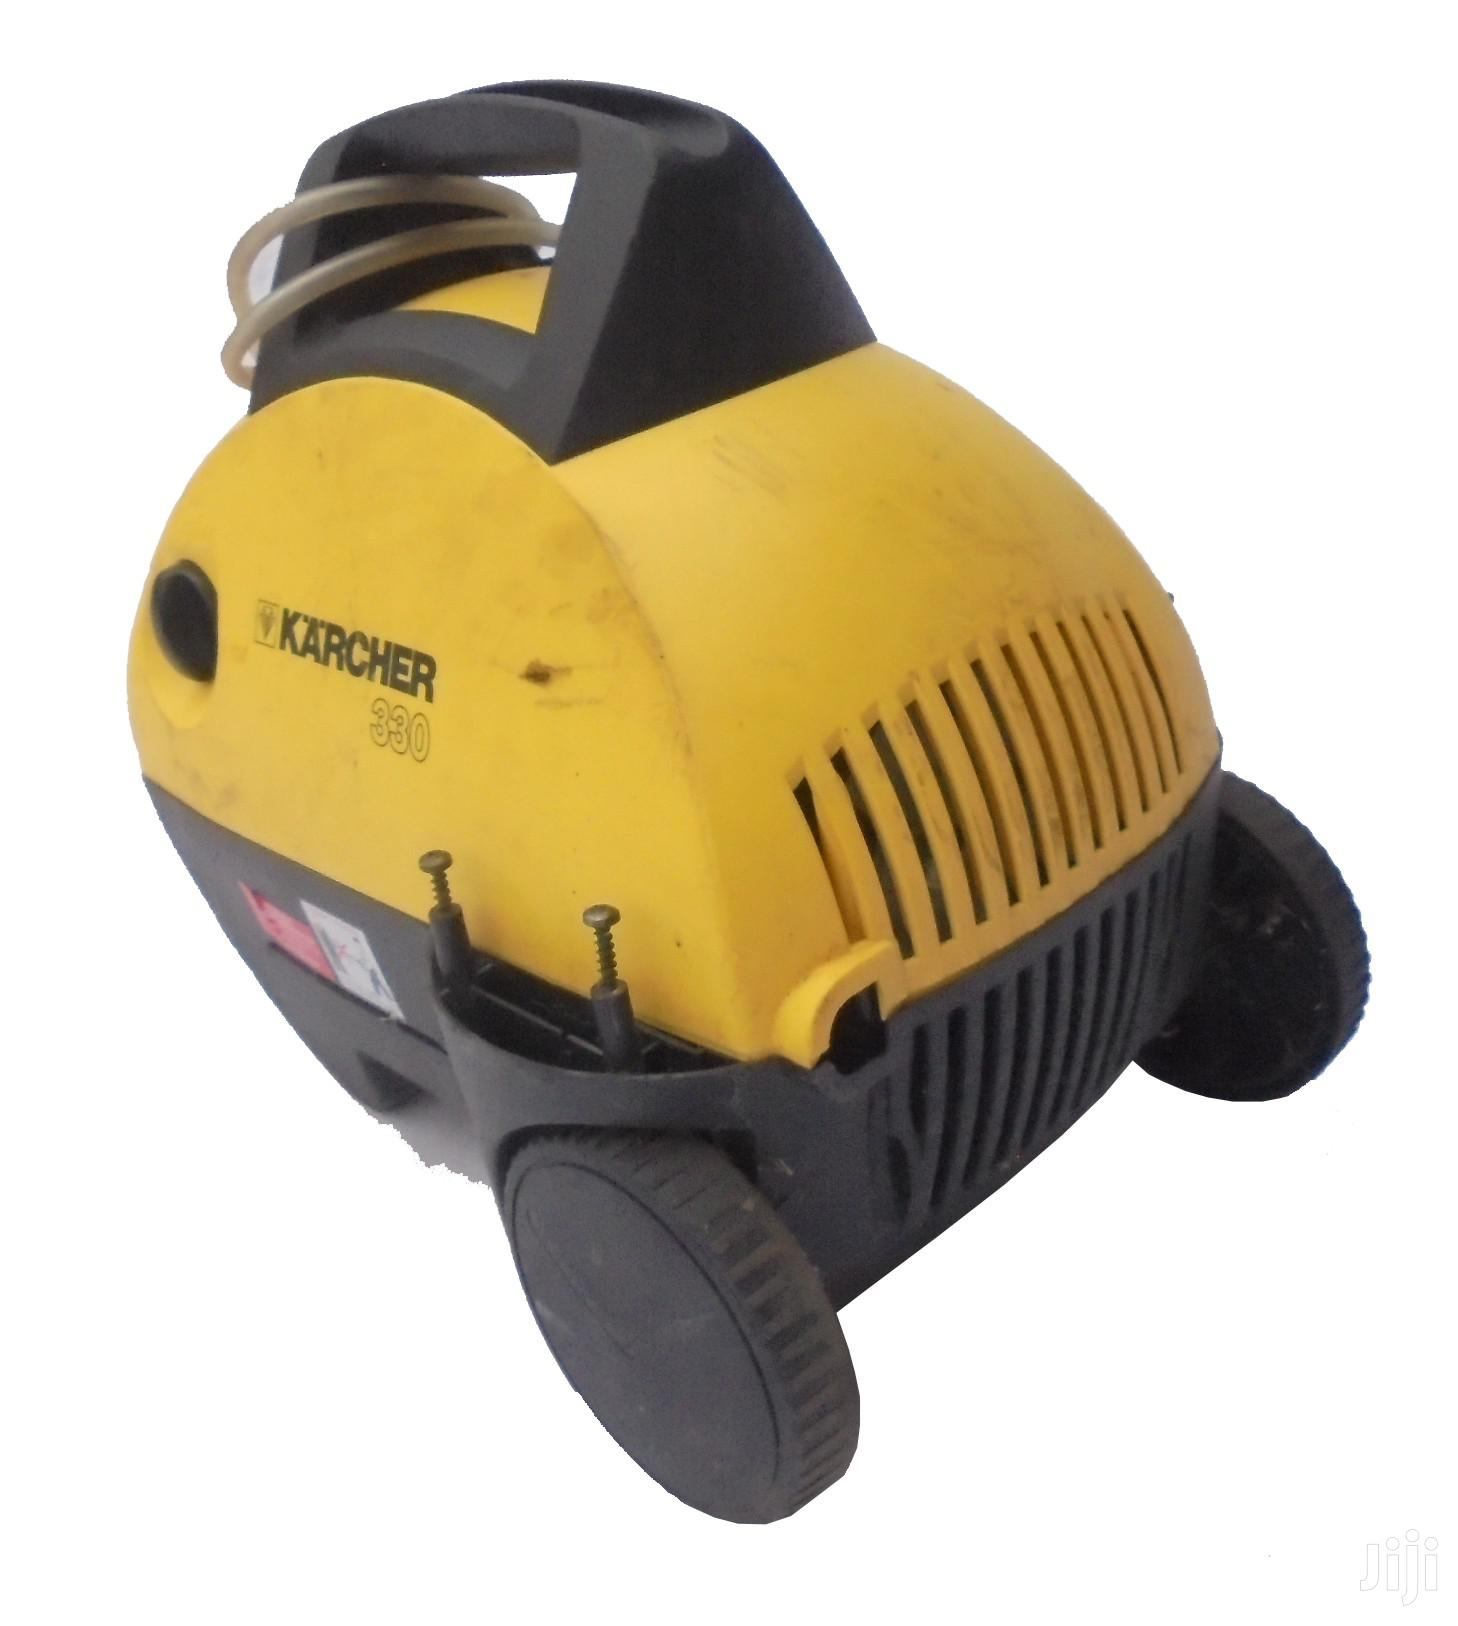 Pressure Washer - KARCHER330 | Garden for sale in Nairobi Central, Nairobi, Kenya